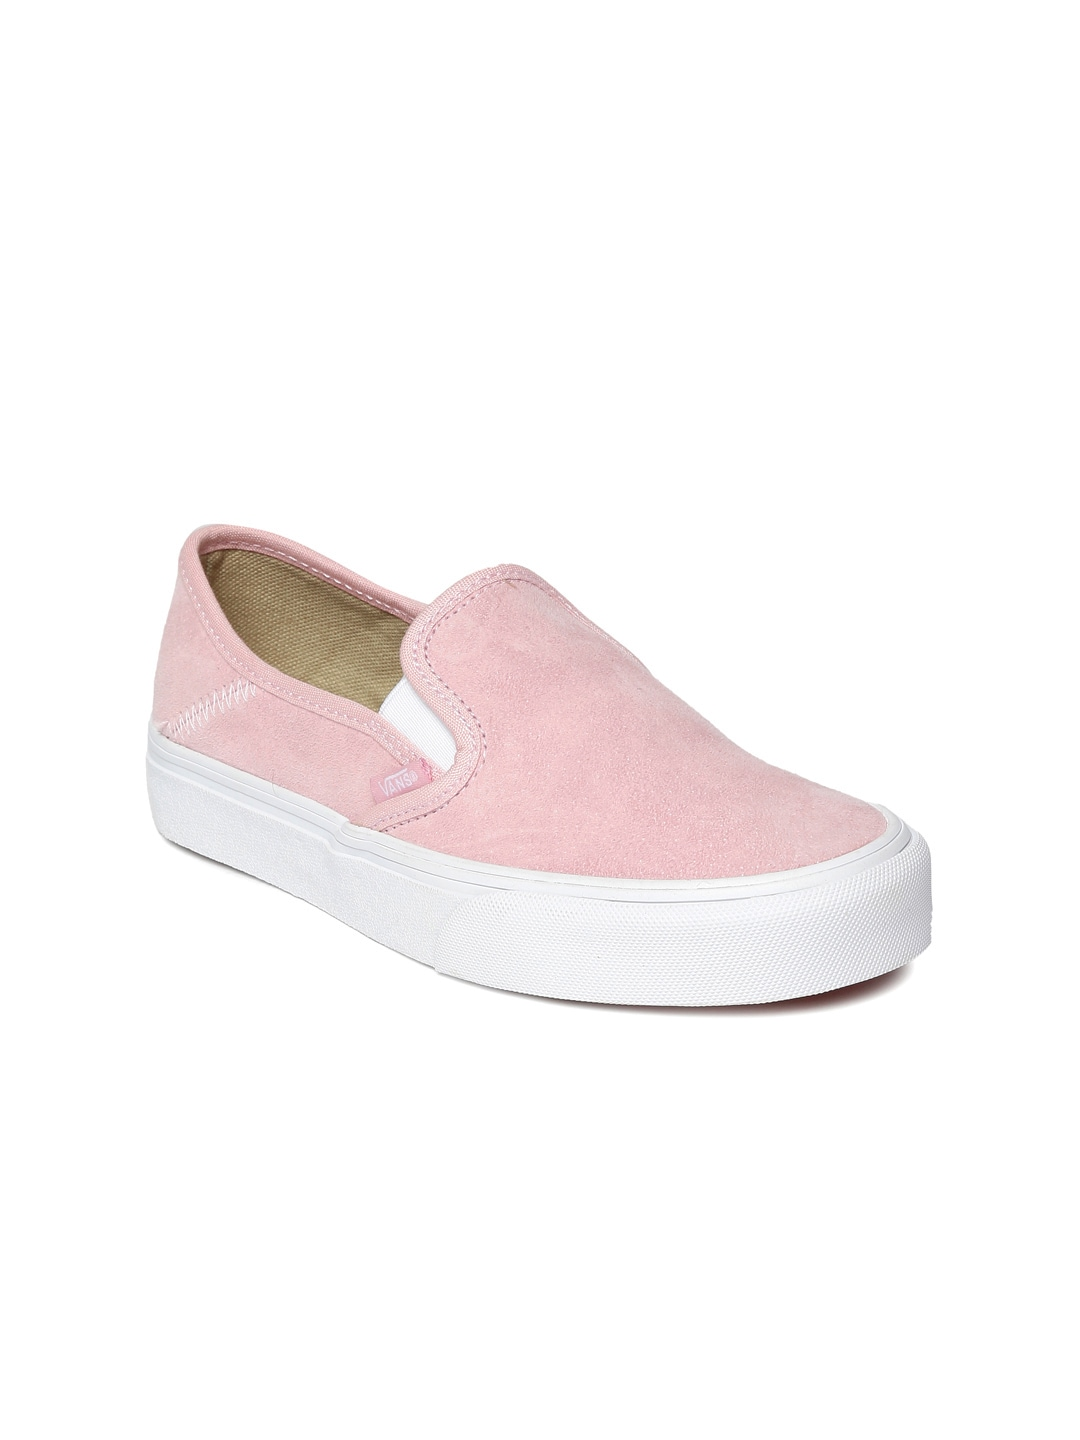 Vans vn00019sw0h1 Women Pink Slip On Sneakers - Best Price in ... d47e60149